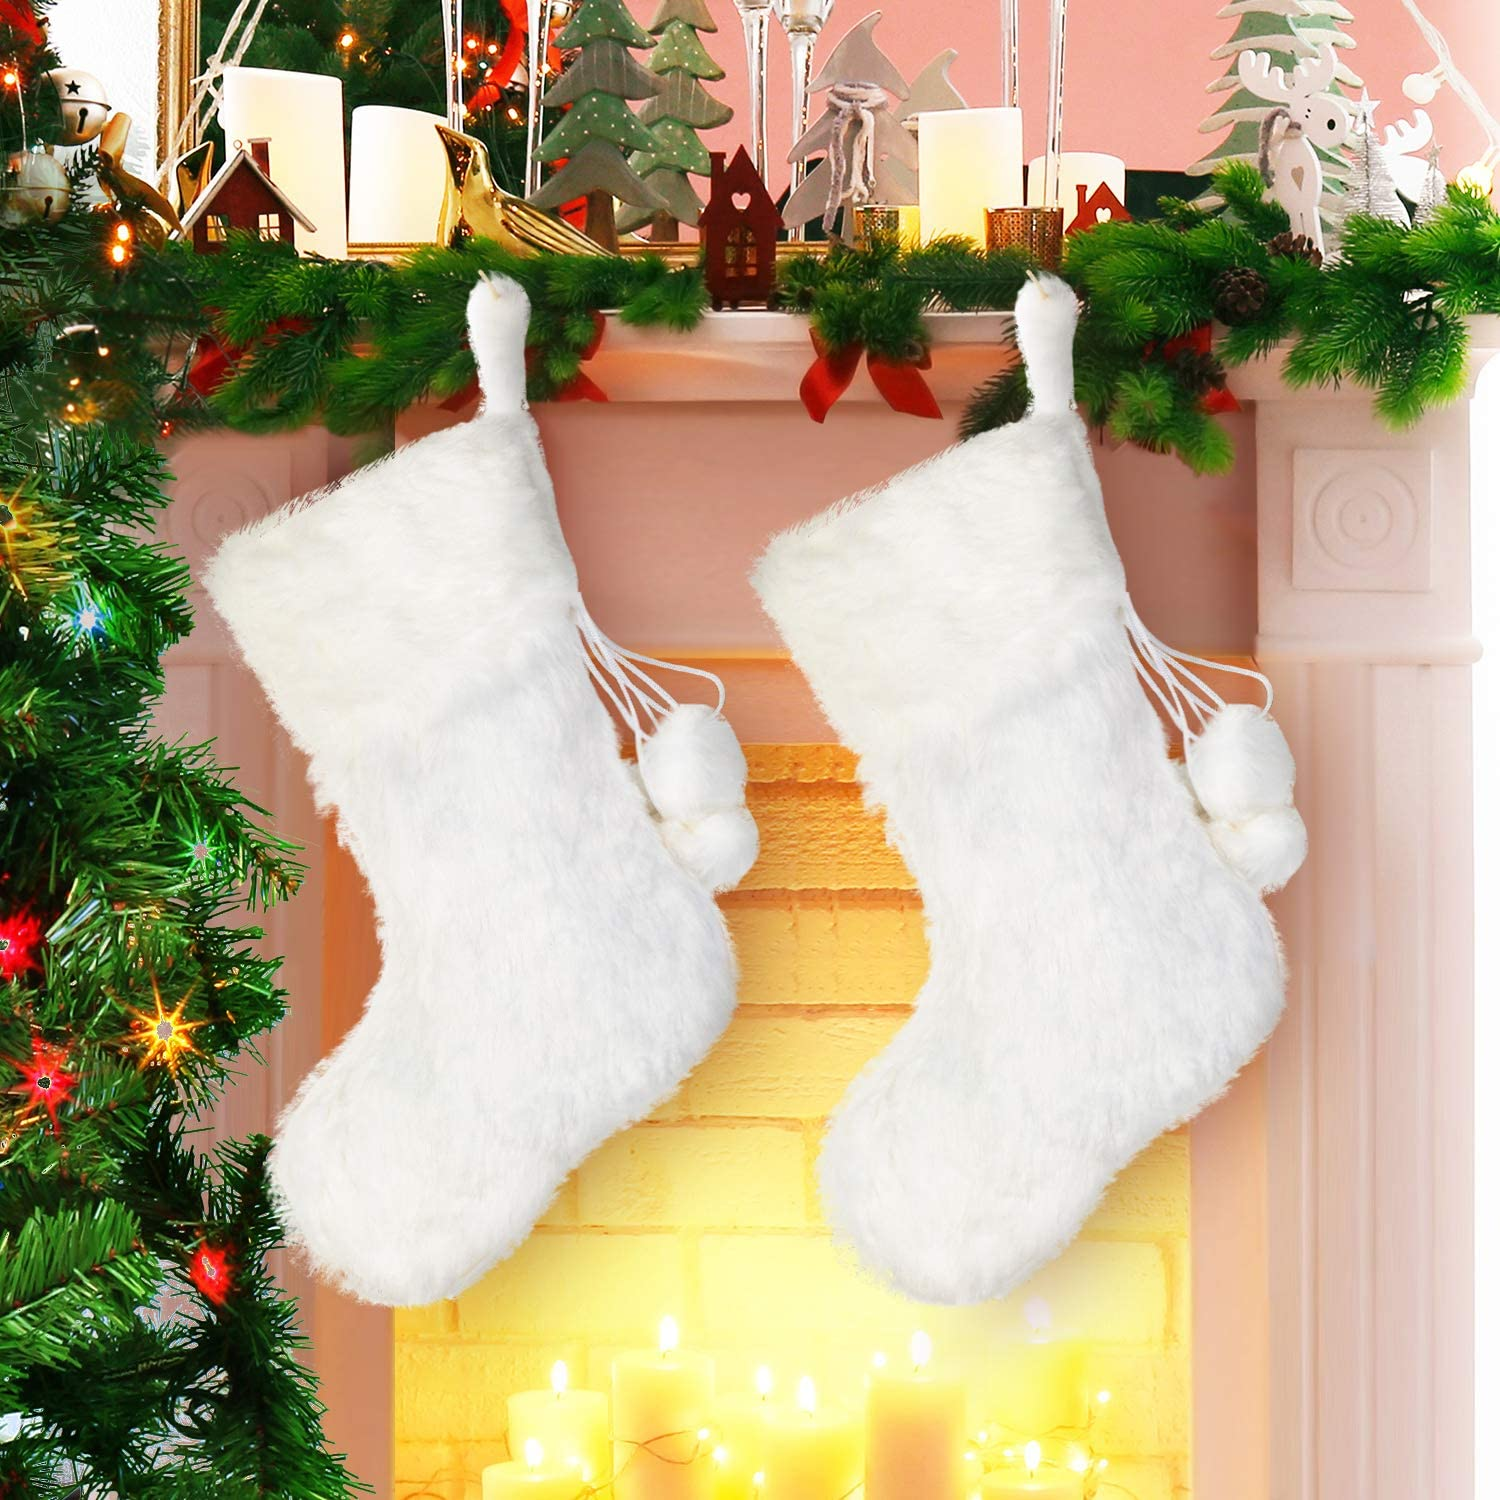 Jovitec 20 Inch Christmas Stockings Fireplace Hanging Stockings Cozy Faux Fur Stocking Plaid Stocking for Christmas Decoration Color 2, 2 Pieces